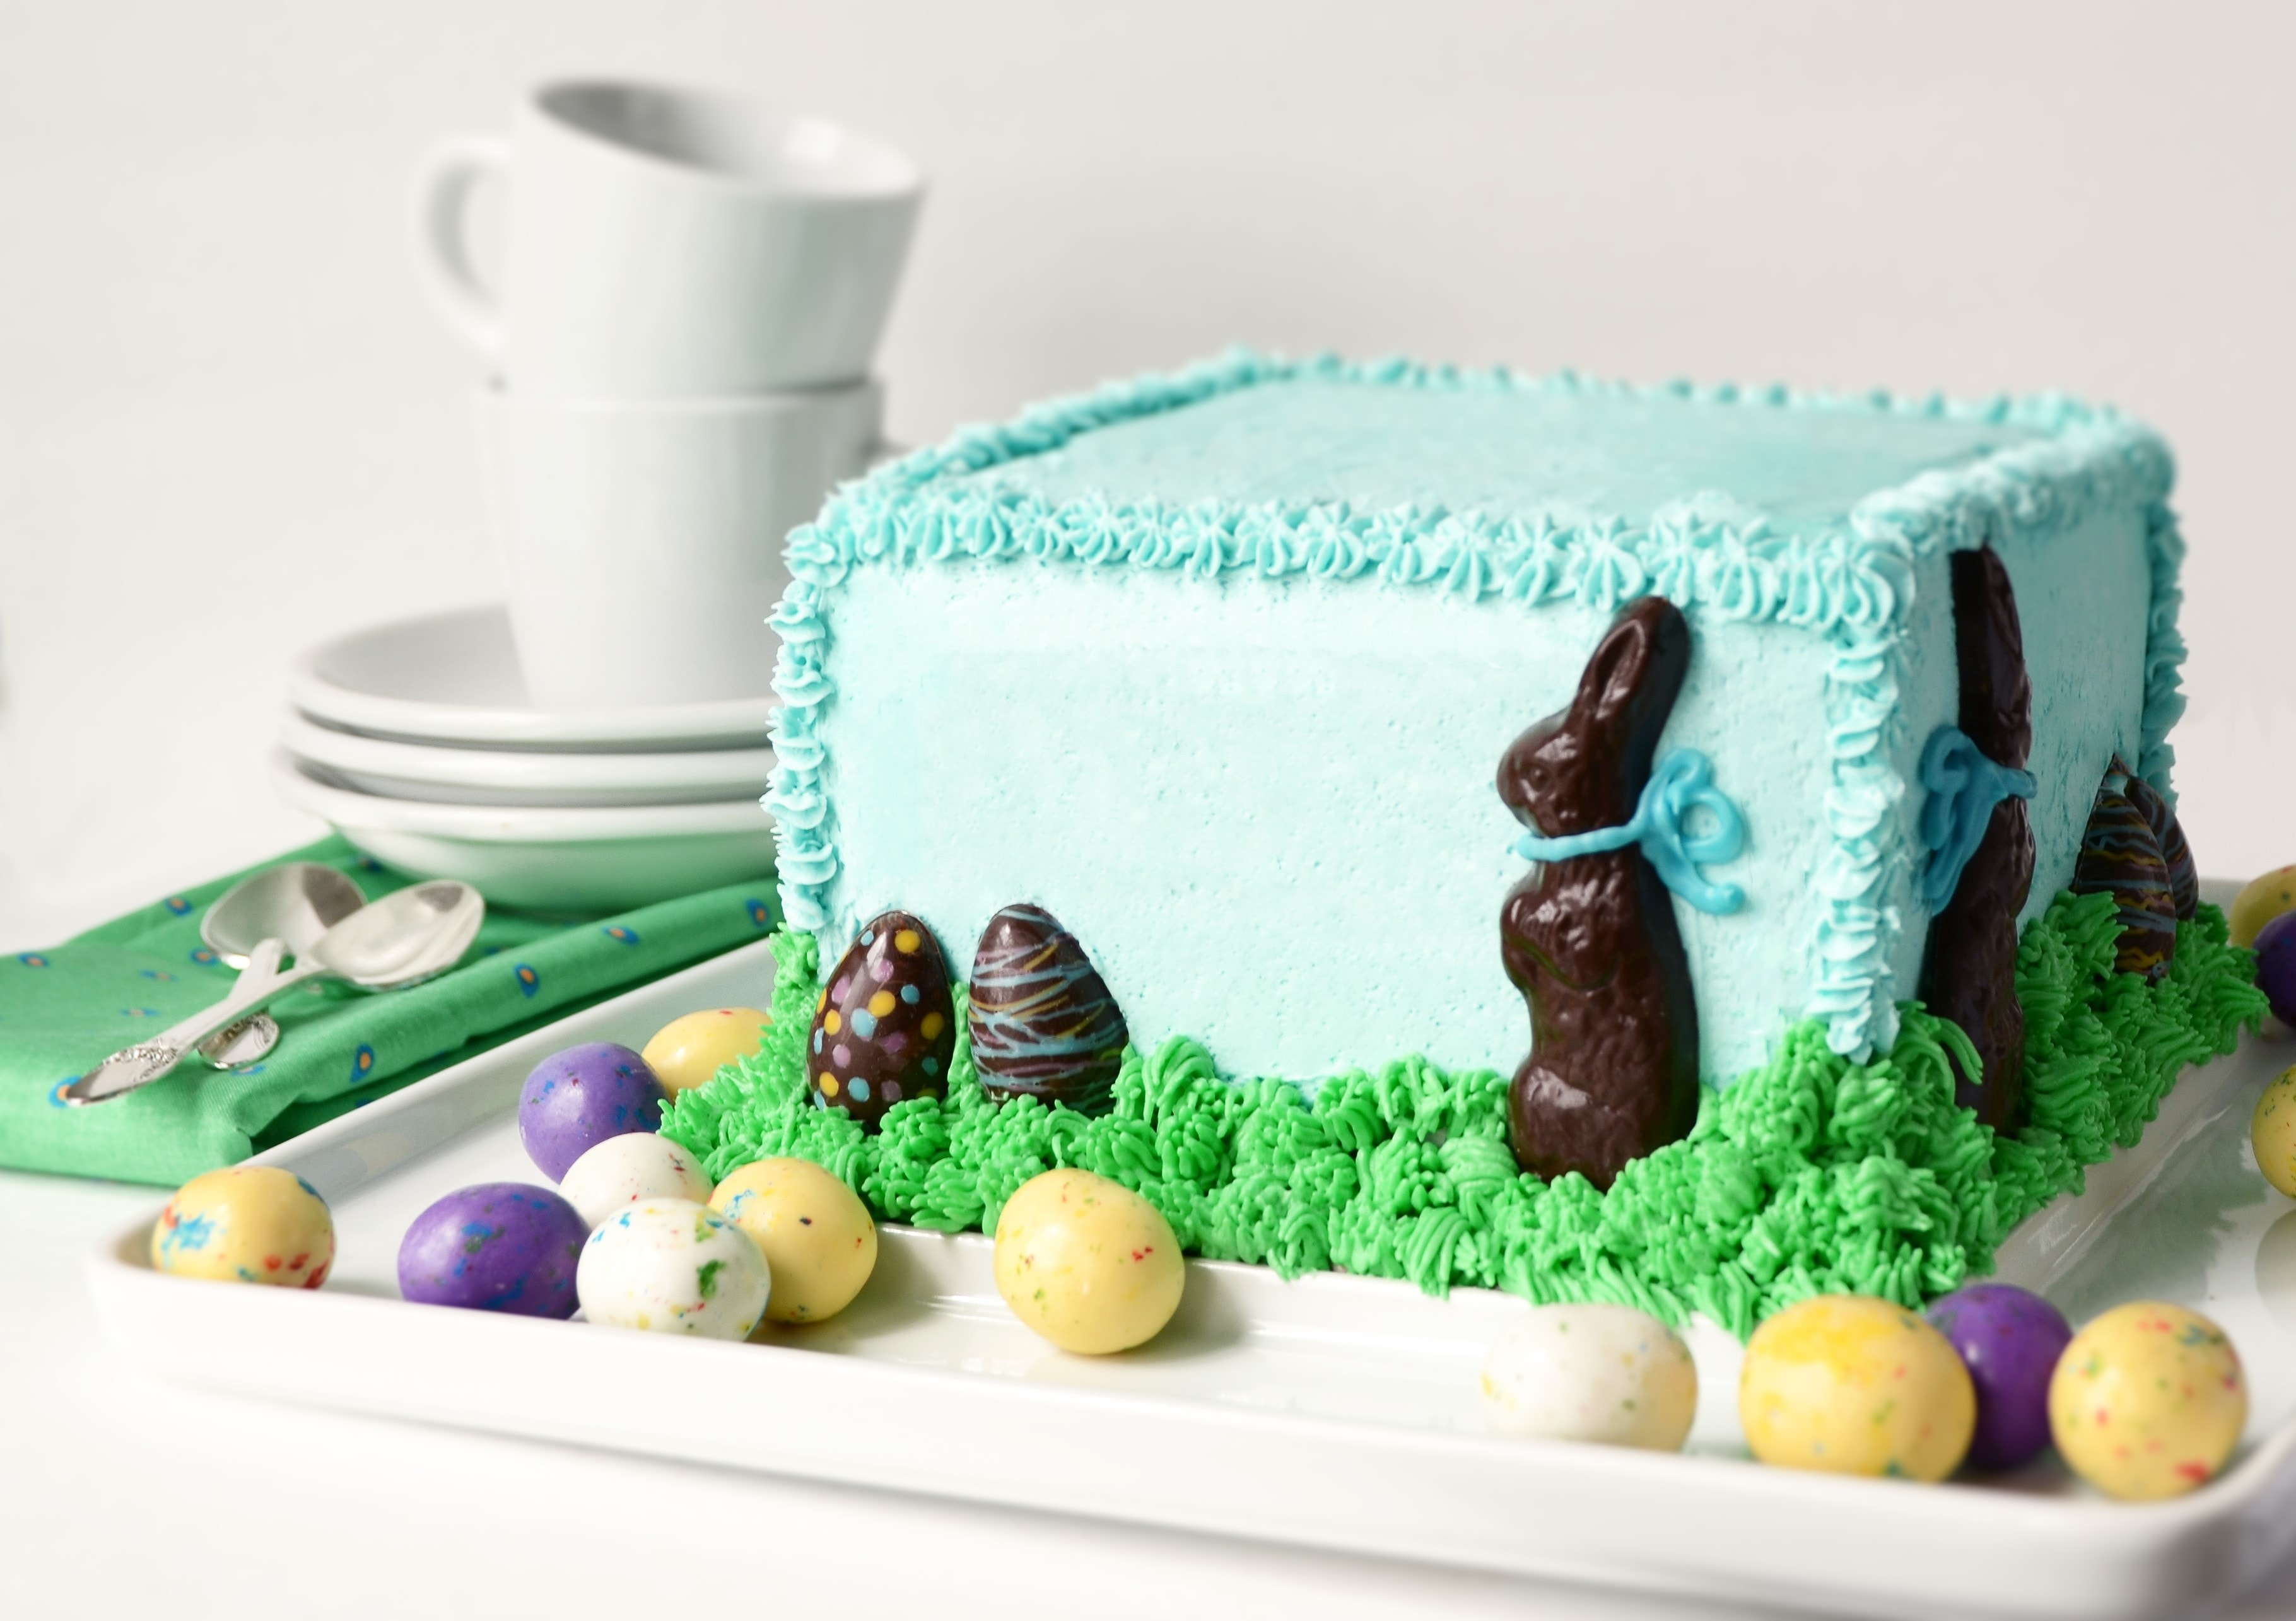 Chocolate Bunny in Grass Cake 22 - Chocolate Easter Bunny Cake